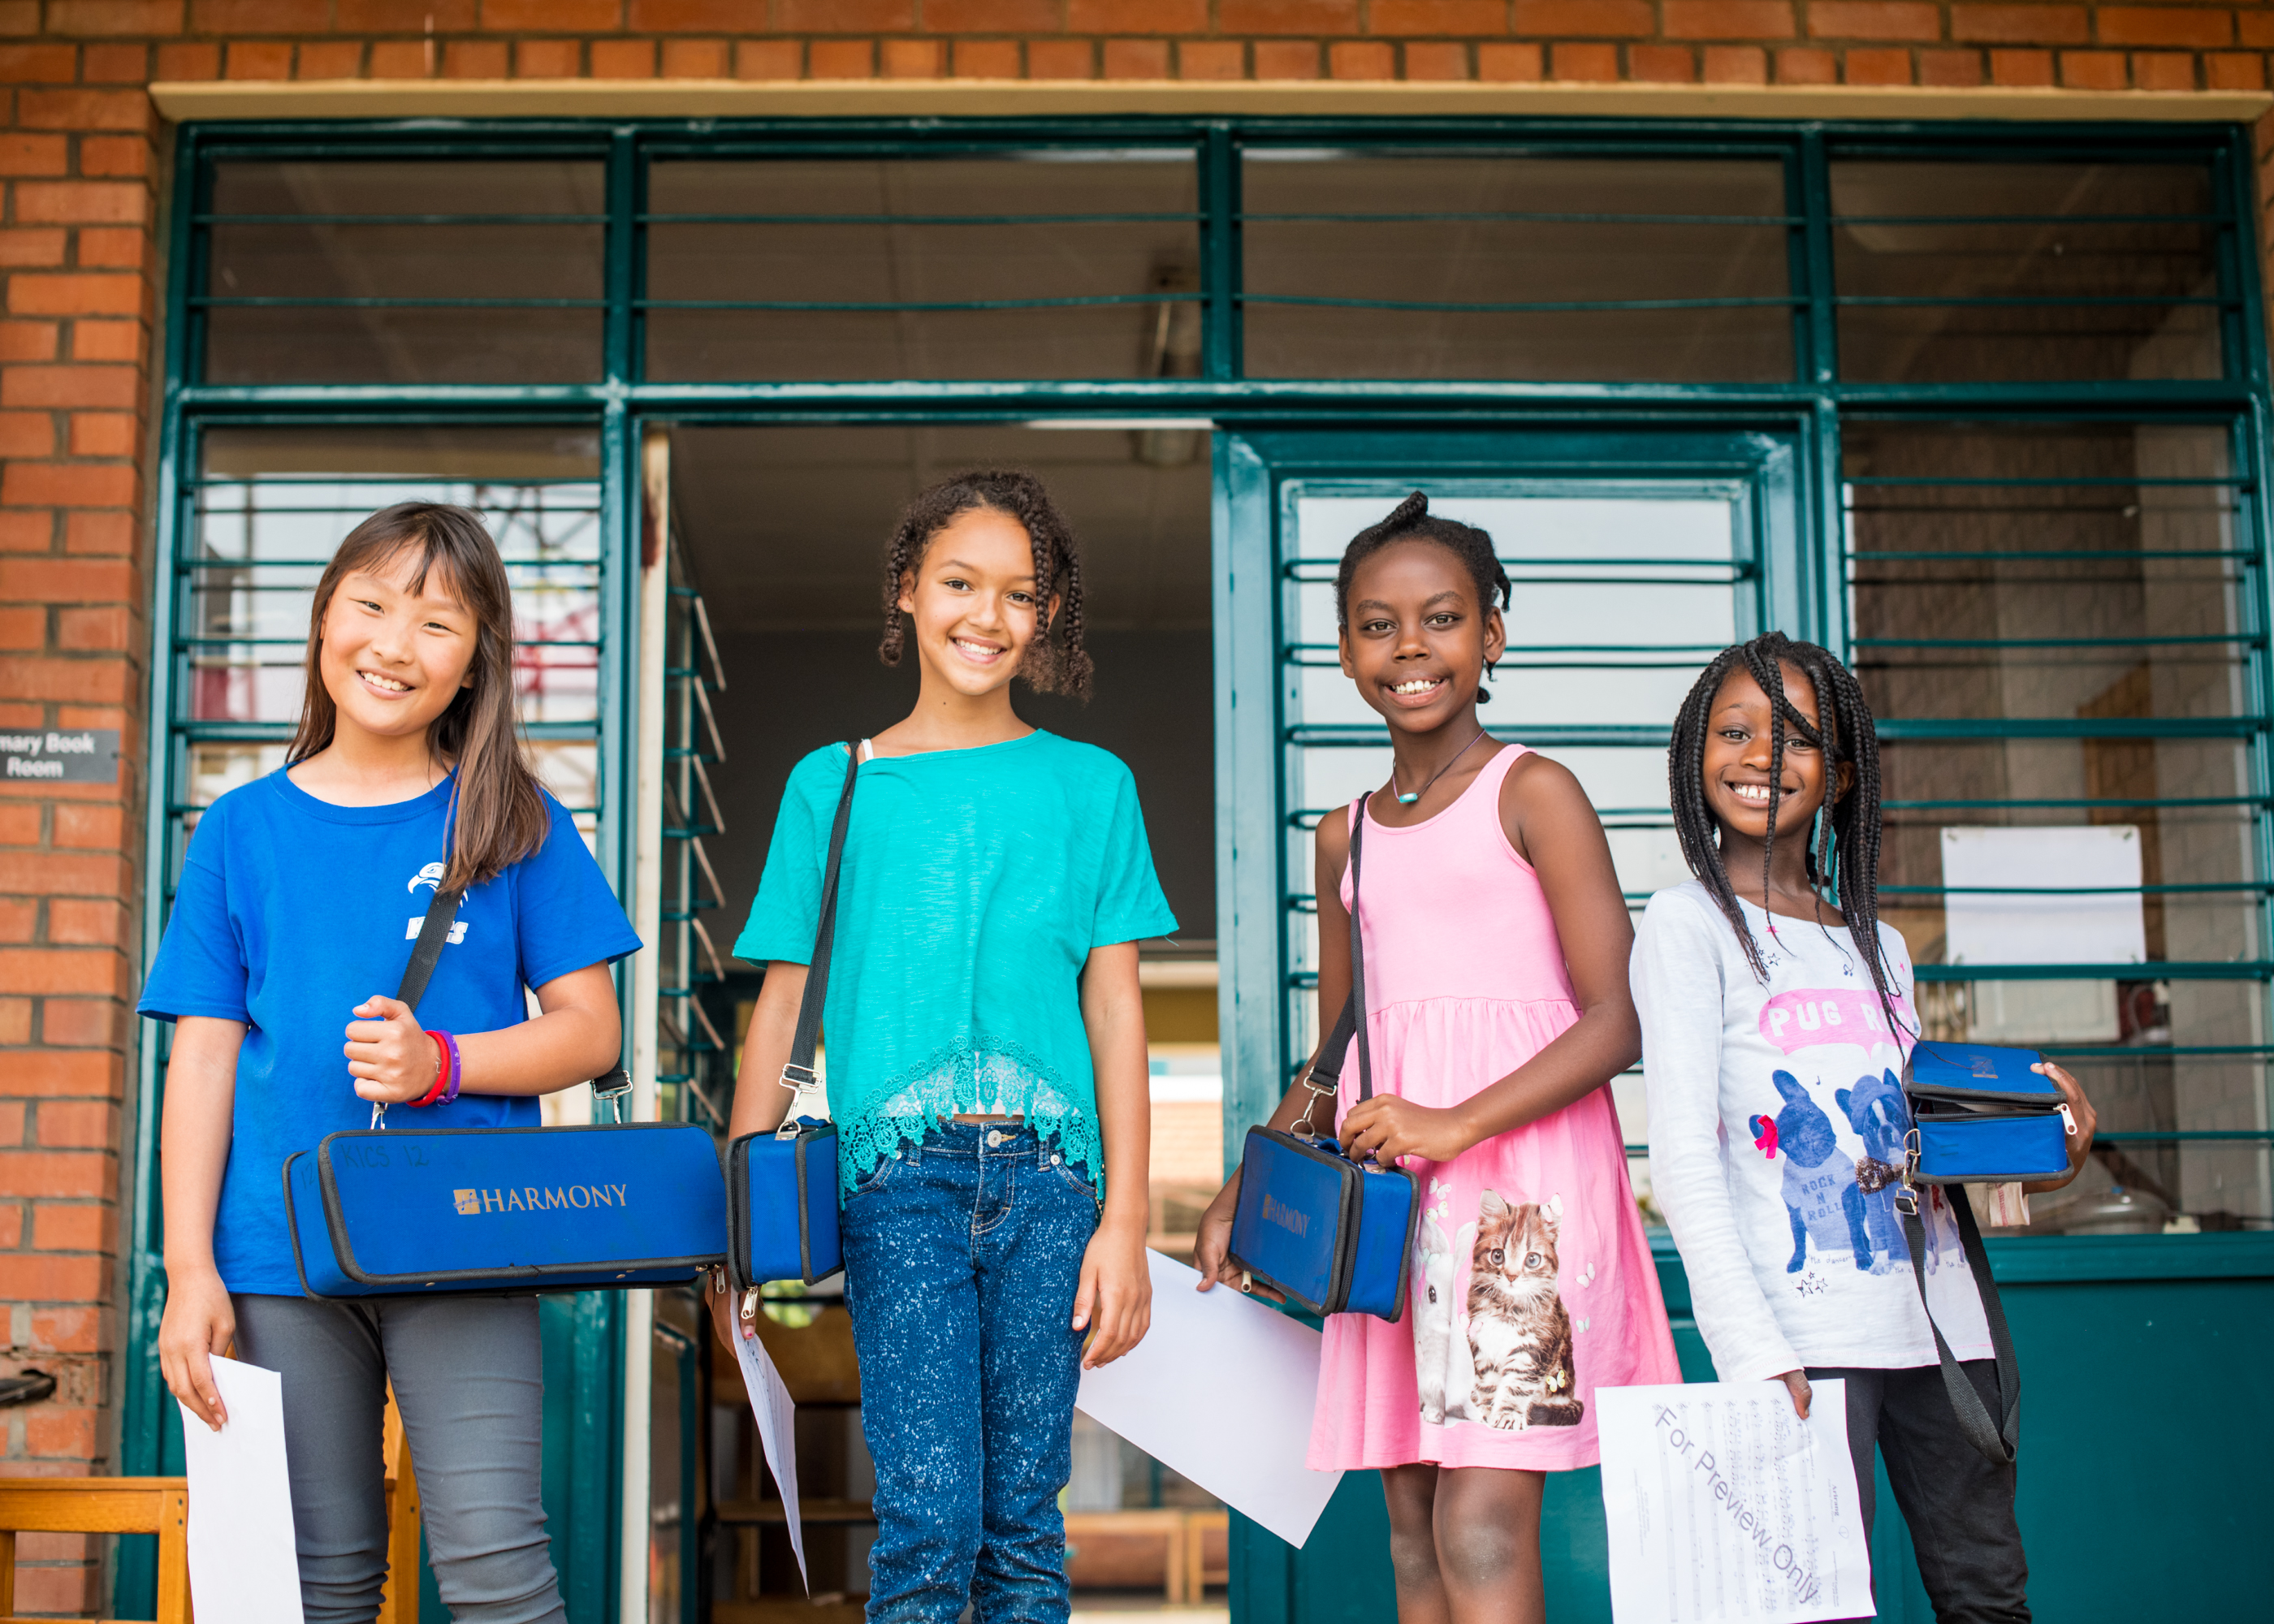 Children smiling in front of the entrance to their classroom